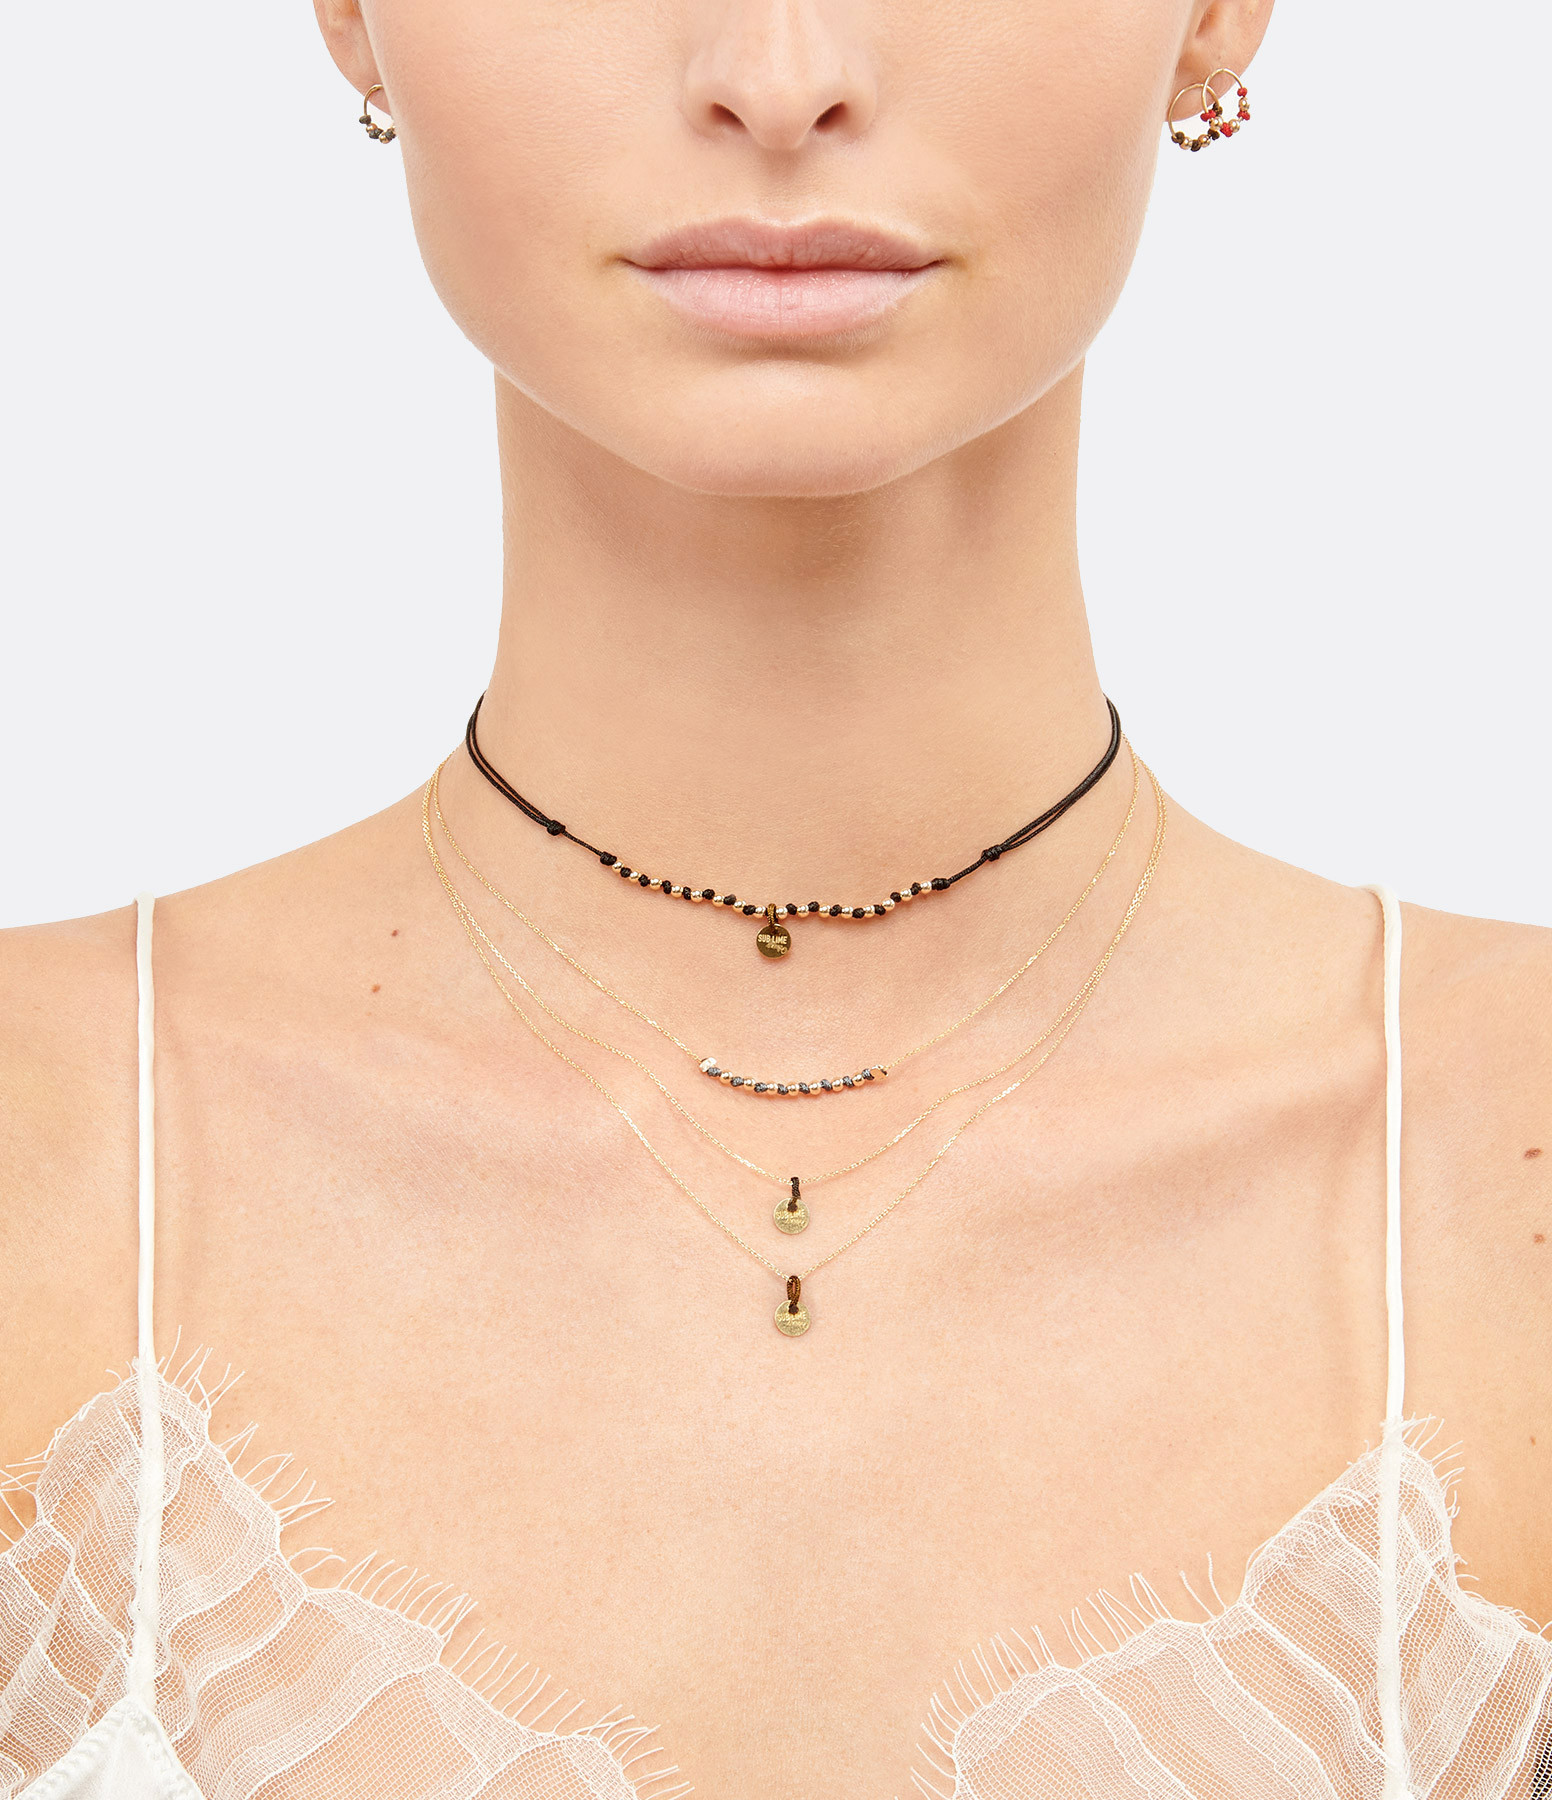 LSONGE - Collier Sublime 7 Perles Carbone Or